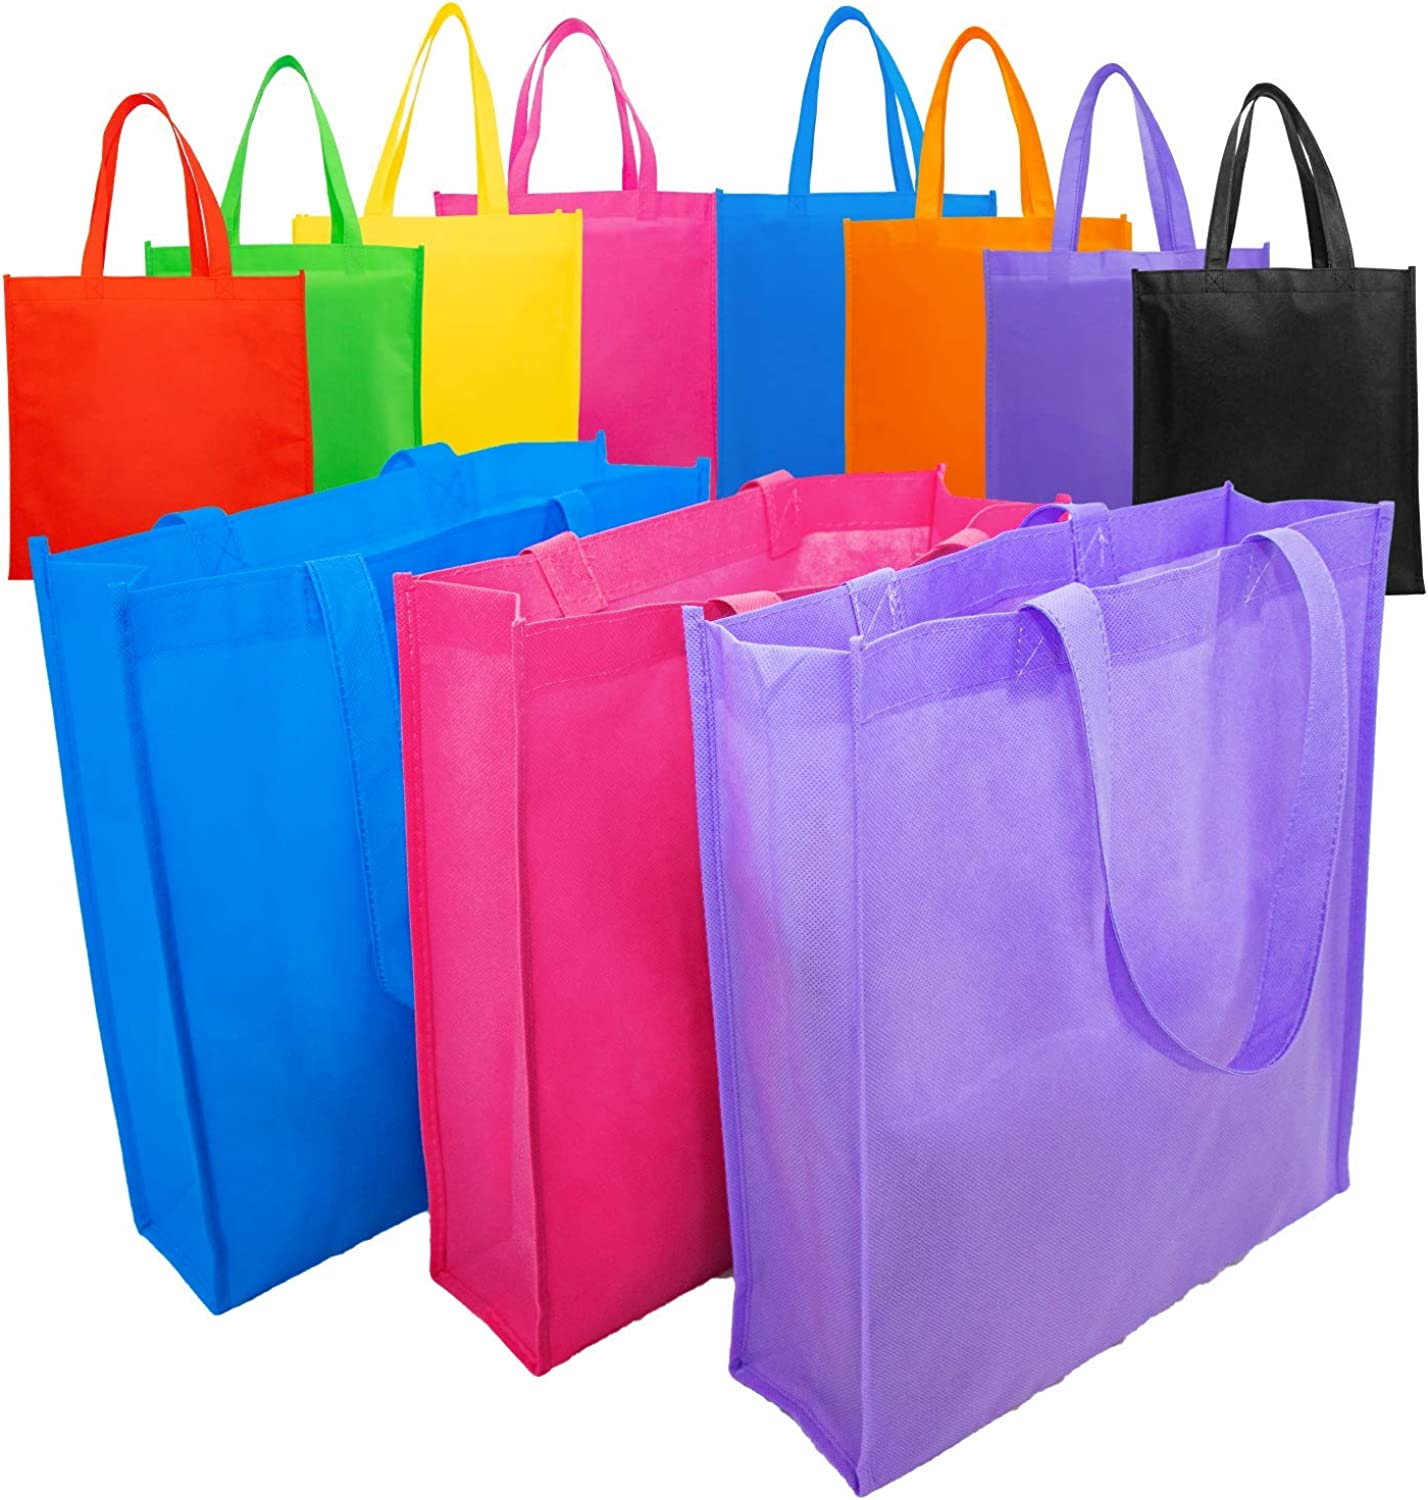 FINKSLY 40 Tote Bag Mega Color Pack Alternative to Canvas Tote Bags - Durable Blank Tote Bags, Reusable Grocery Bags & Eco-Friendly Shopping Bags, Large Tote Bags 13in x 14in x 4in, Fabric Tote Bags